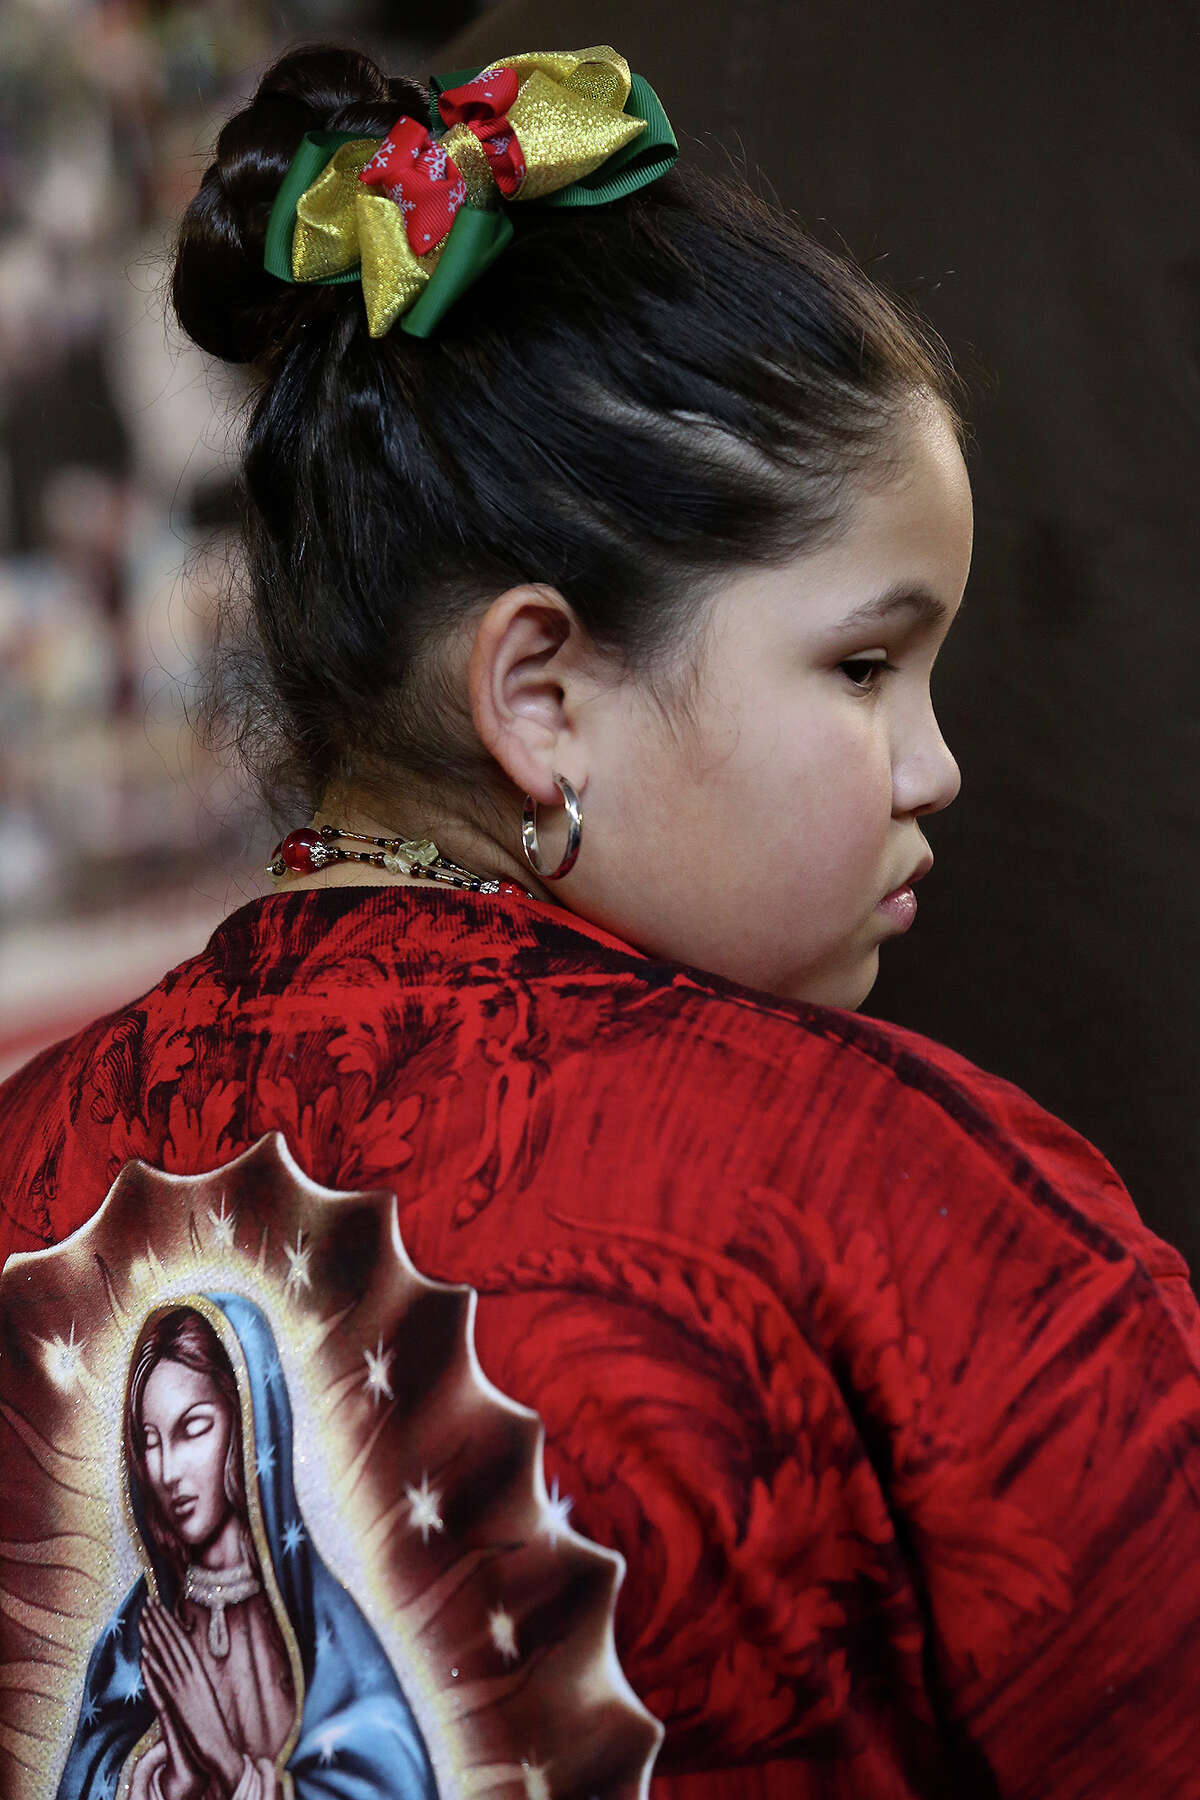 Olivia Quintero, 9, participates in Rosario a la Virgen de Guadalupe at Fuerza Unida in San Antonio on Tuesday, Dec. 10, 2013.